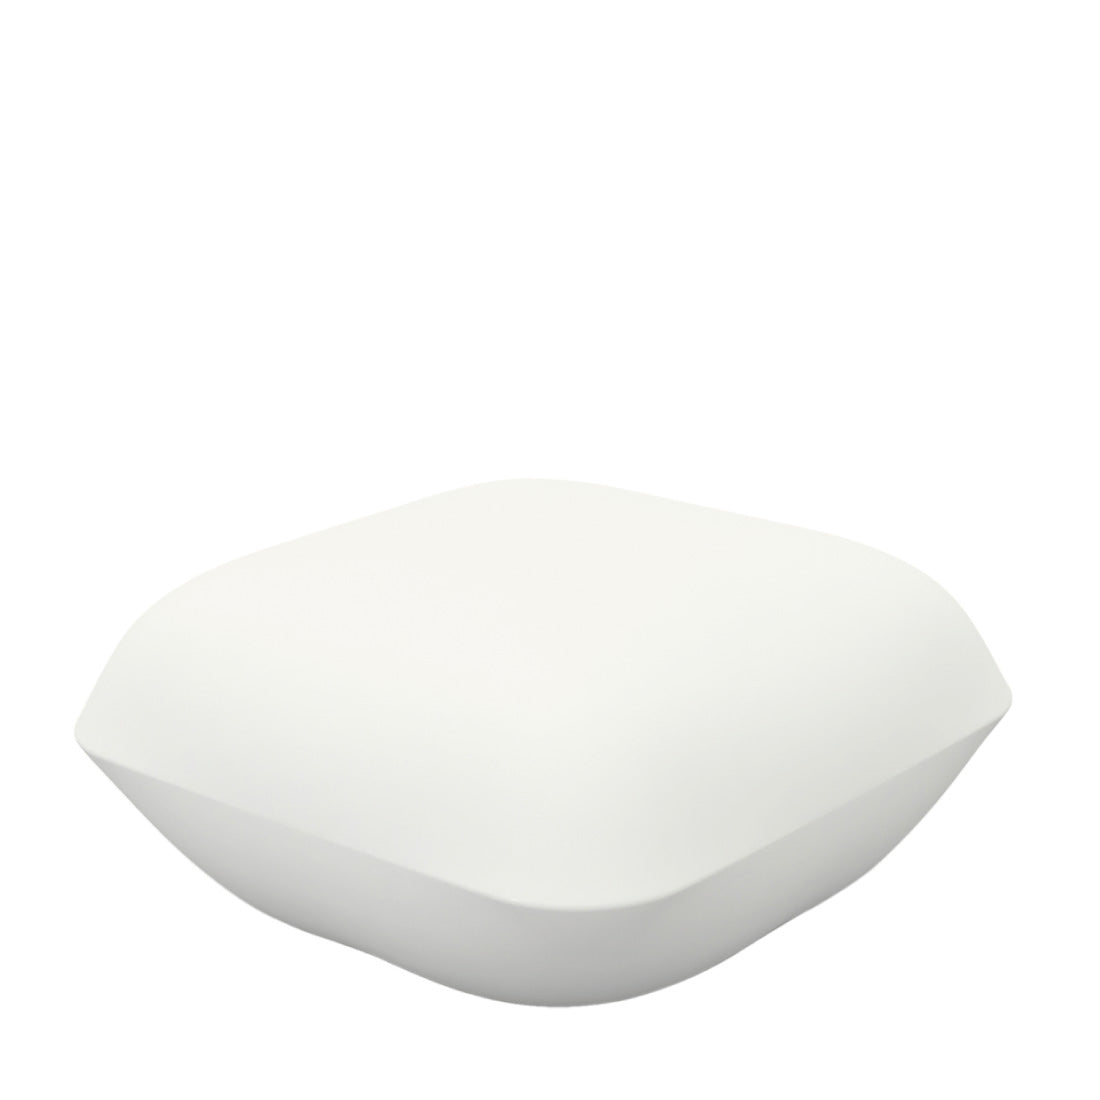 Puff Pillow de Vondom